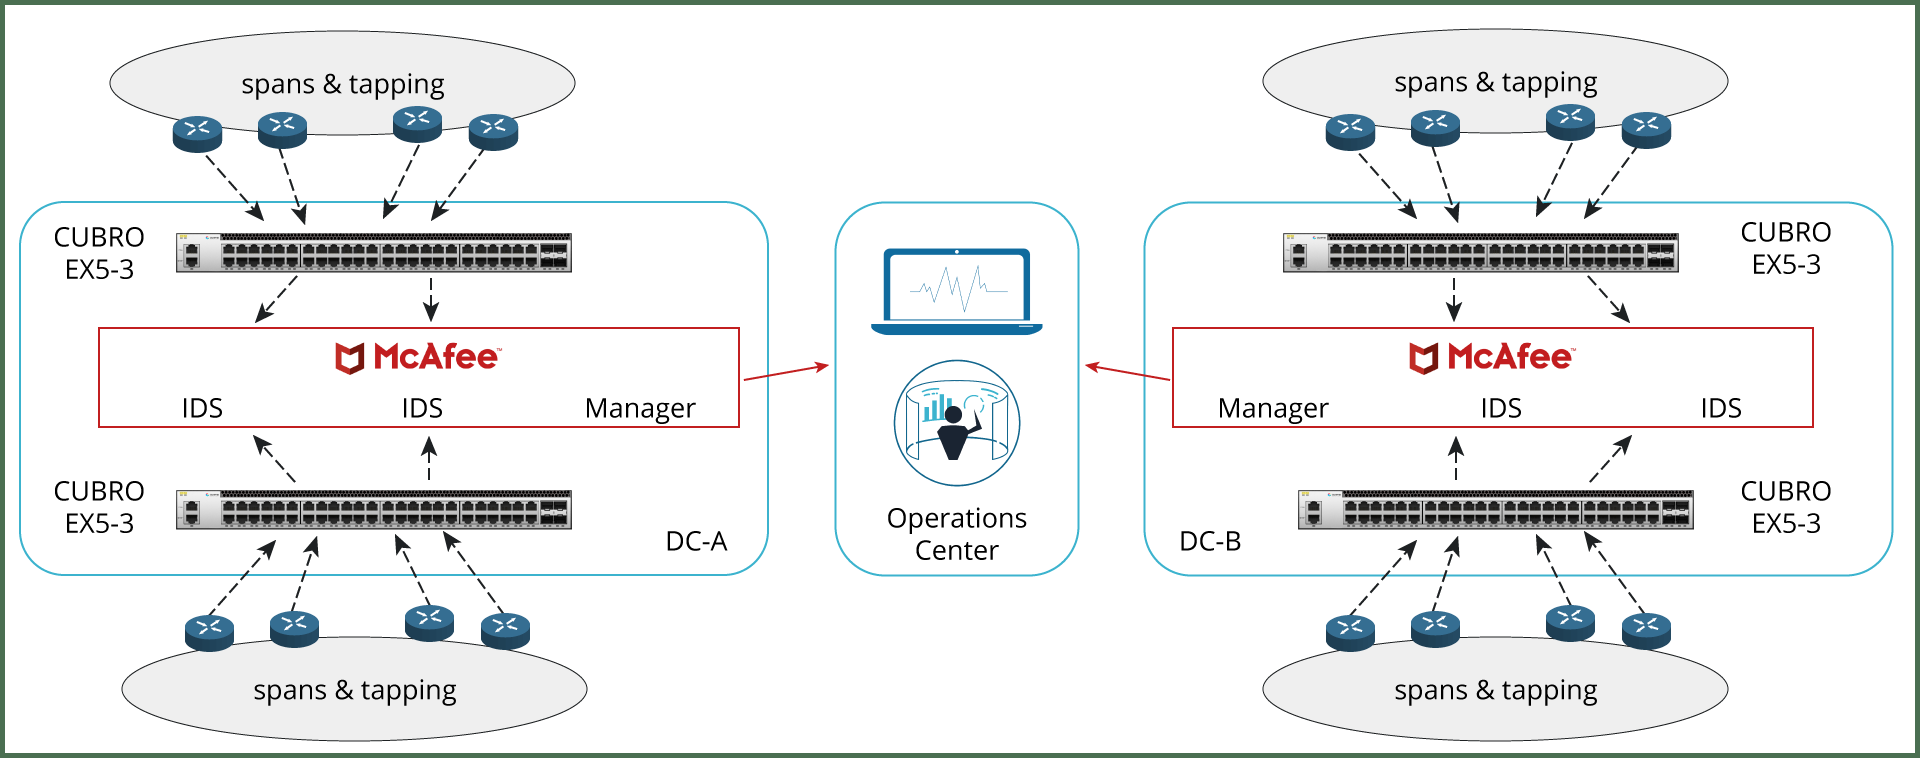 Cubro's Deployment across Data Centers